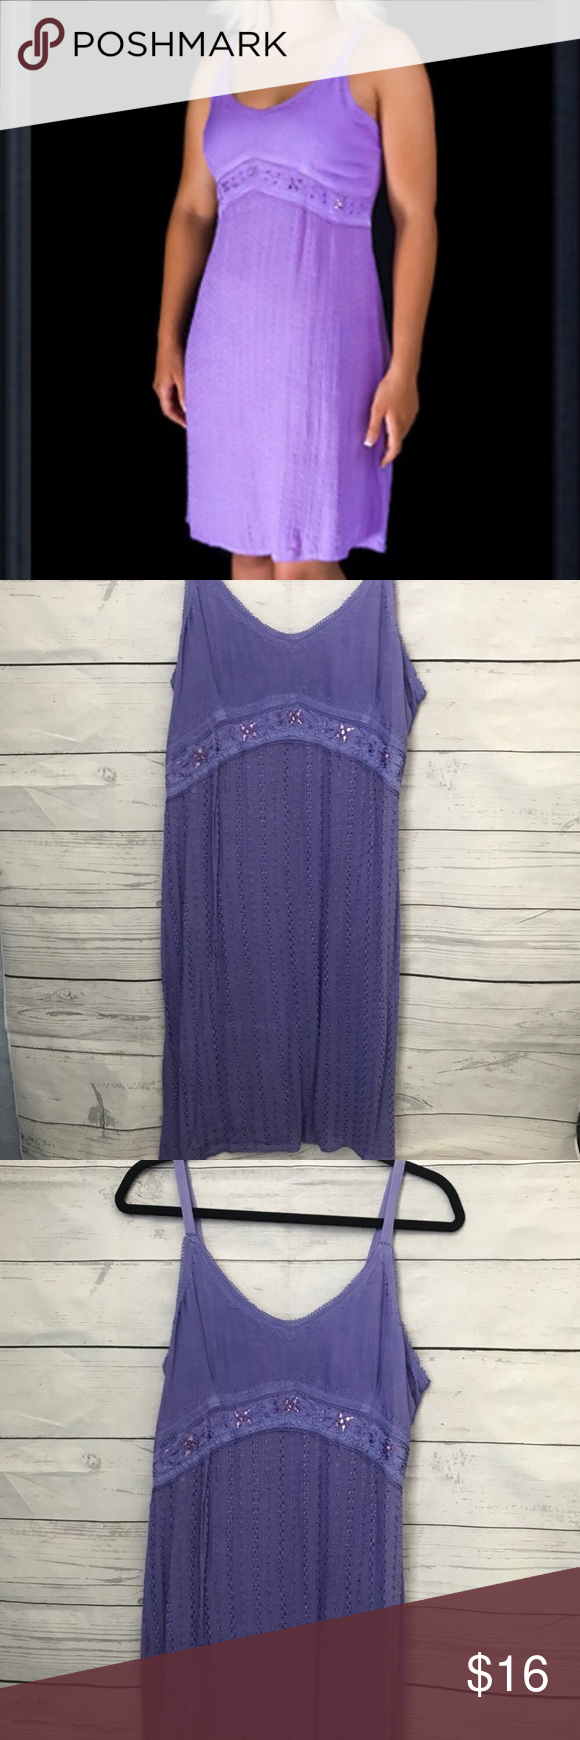 906baa94c9ee Raya Sun lavender Sun Dress This bright Lavender Sequined Summer Dress is  perfect for the beach